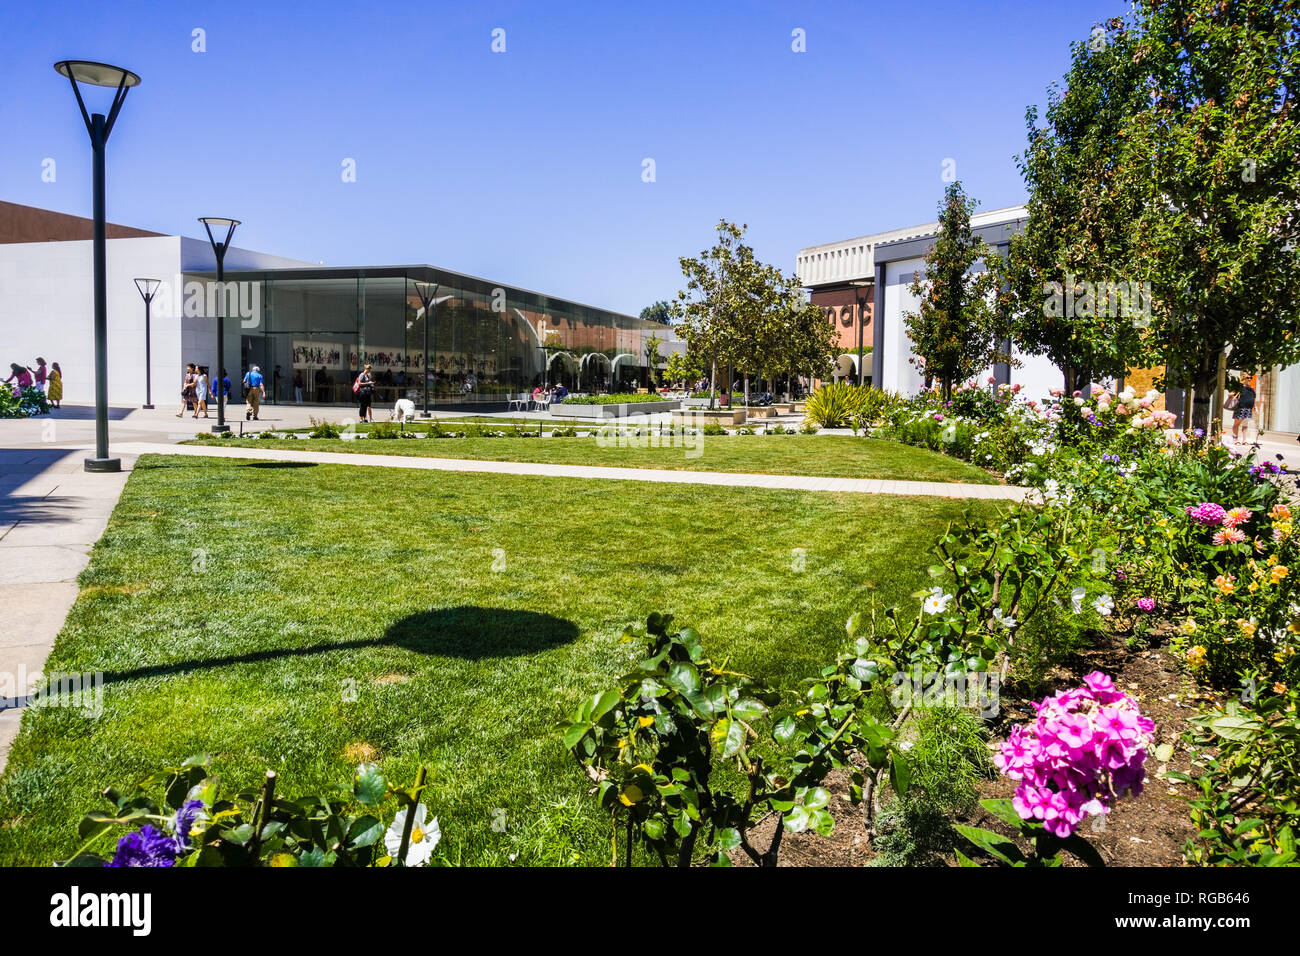 August 2, 2018 Palo Alto / CA / USA - Beautiful landscaping at the upscale, open air Stanford shopping center; the Apple and Macy's stores visible in  - Stock Image